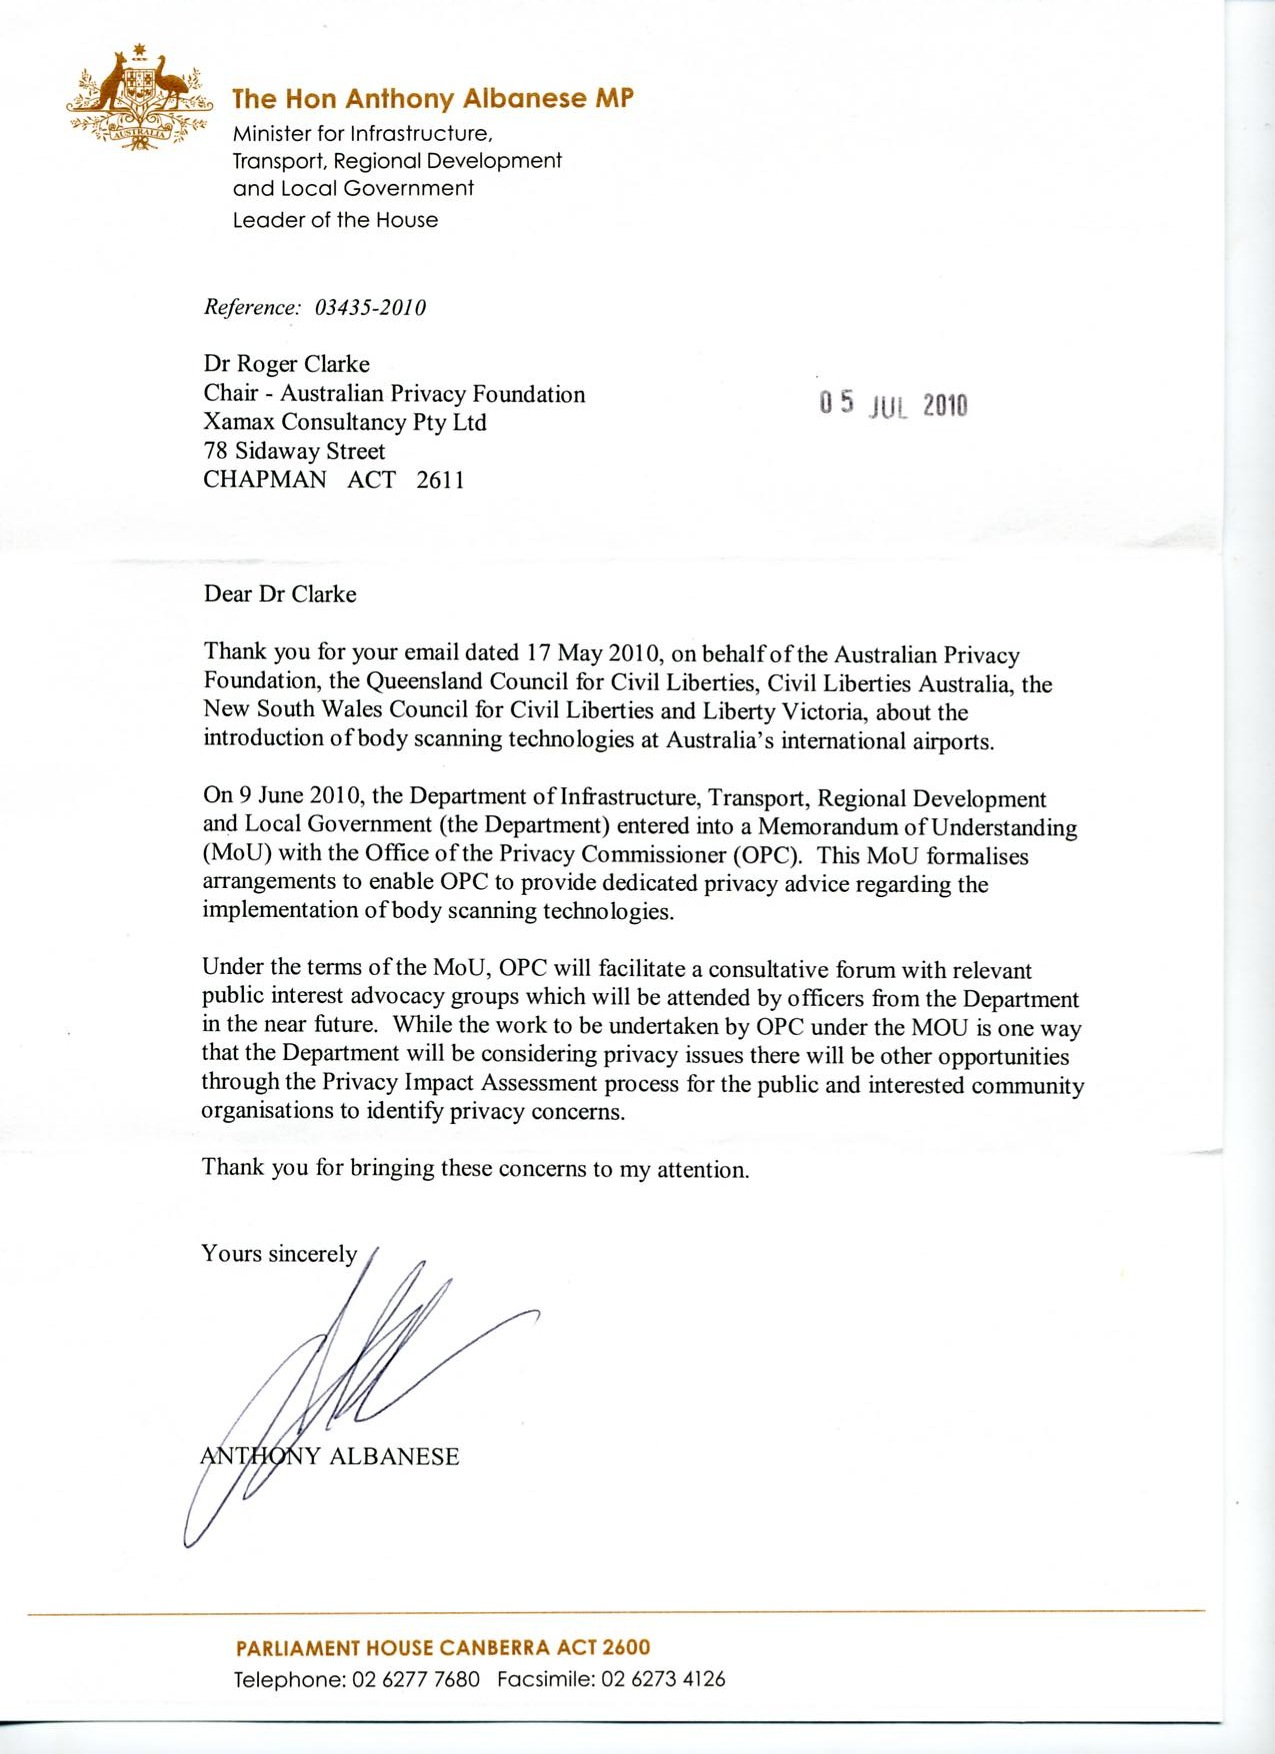 Indexed by date australian privacy foundation ministers reply spiritdancerdesigns Image collections